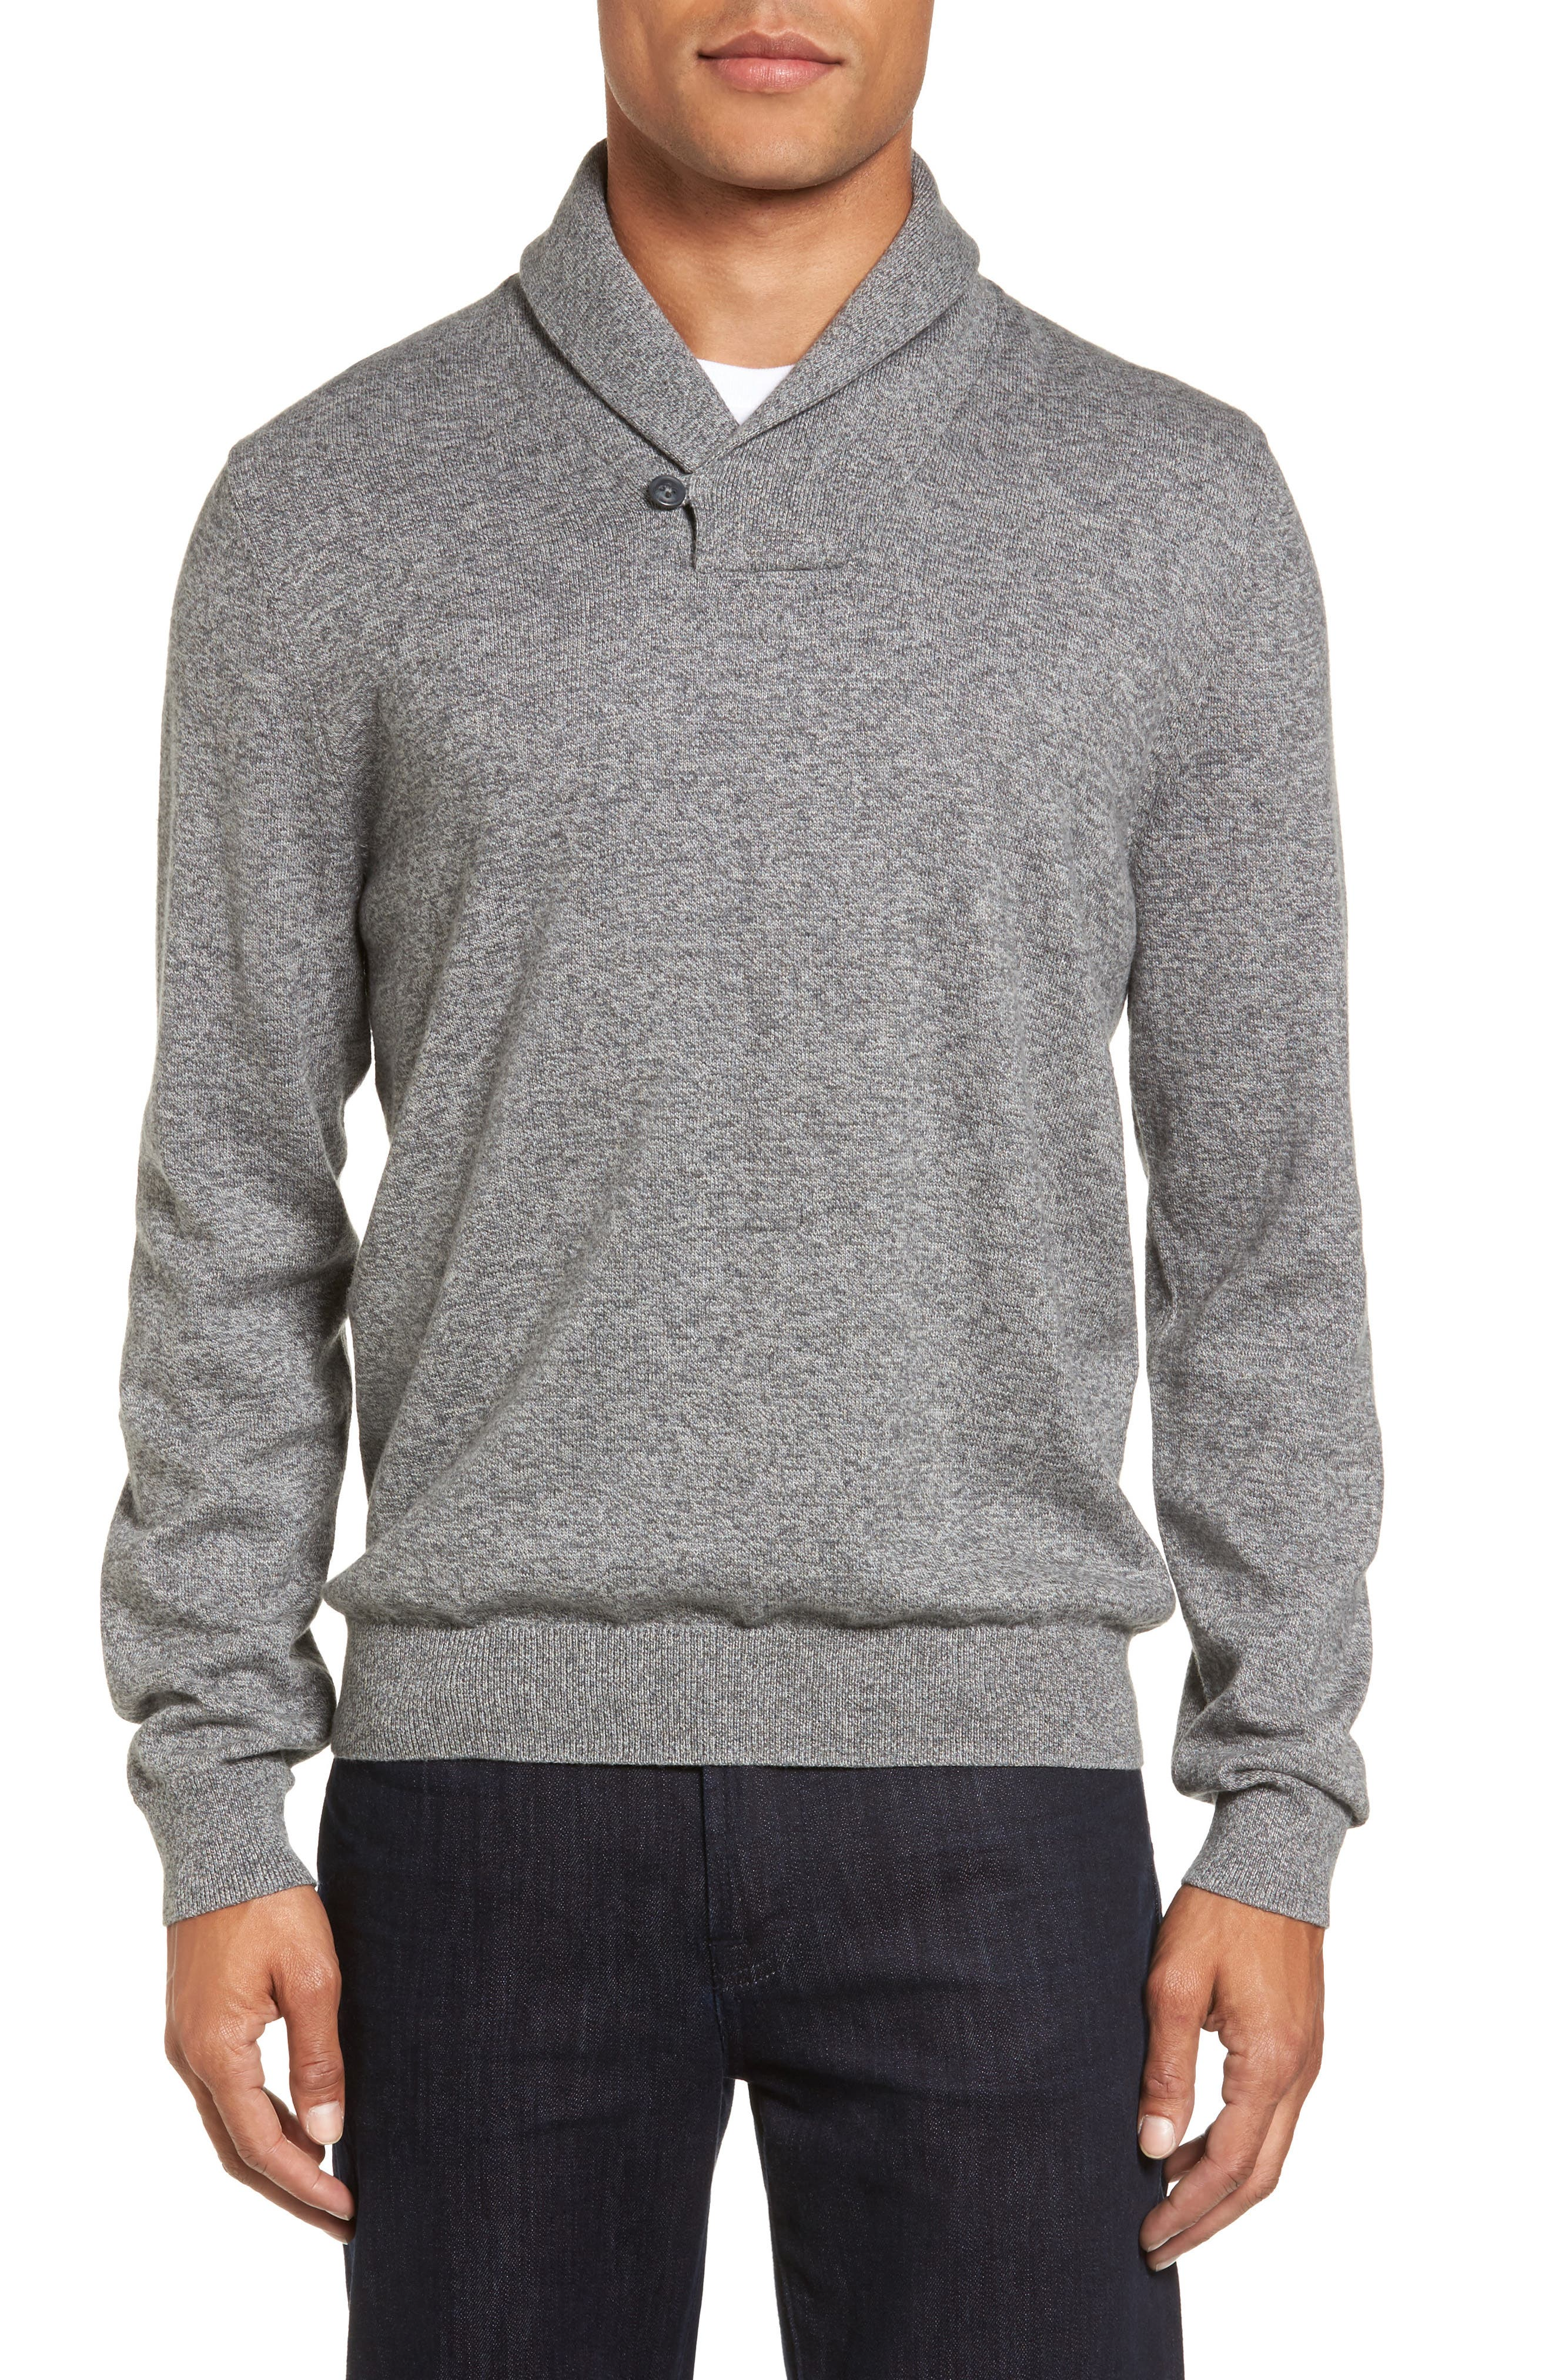 Nordstrom Shop Cotton & Cashmere Shawl Collar Sweater, Grey